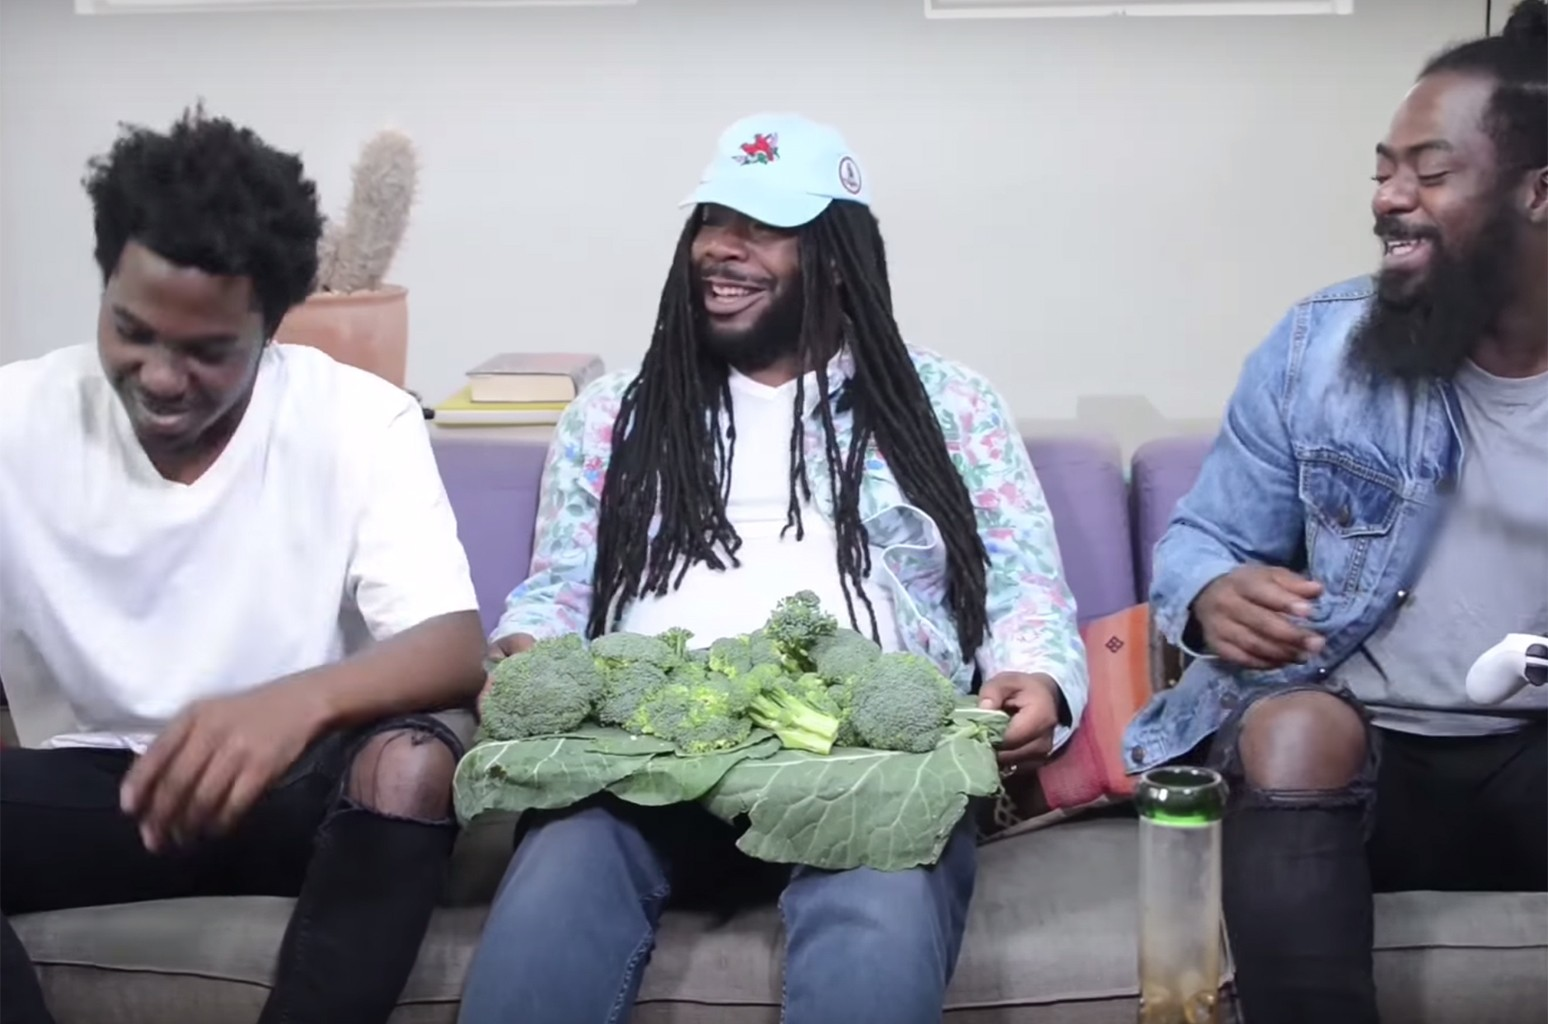 Exclusive! Outtakes with D.R.A.M. for Broccoli.